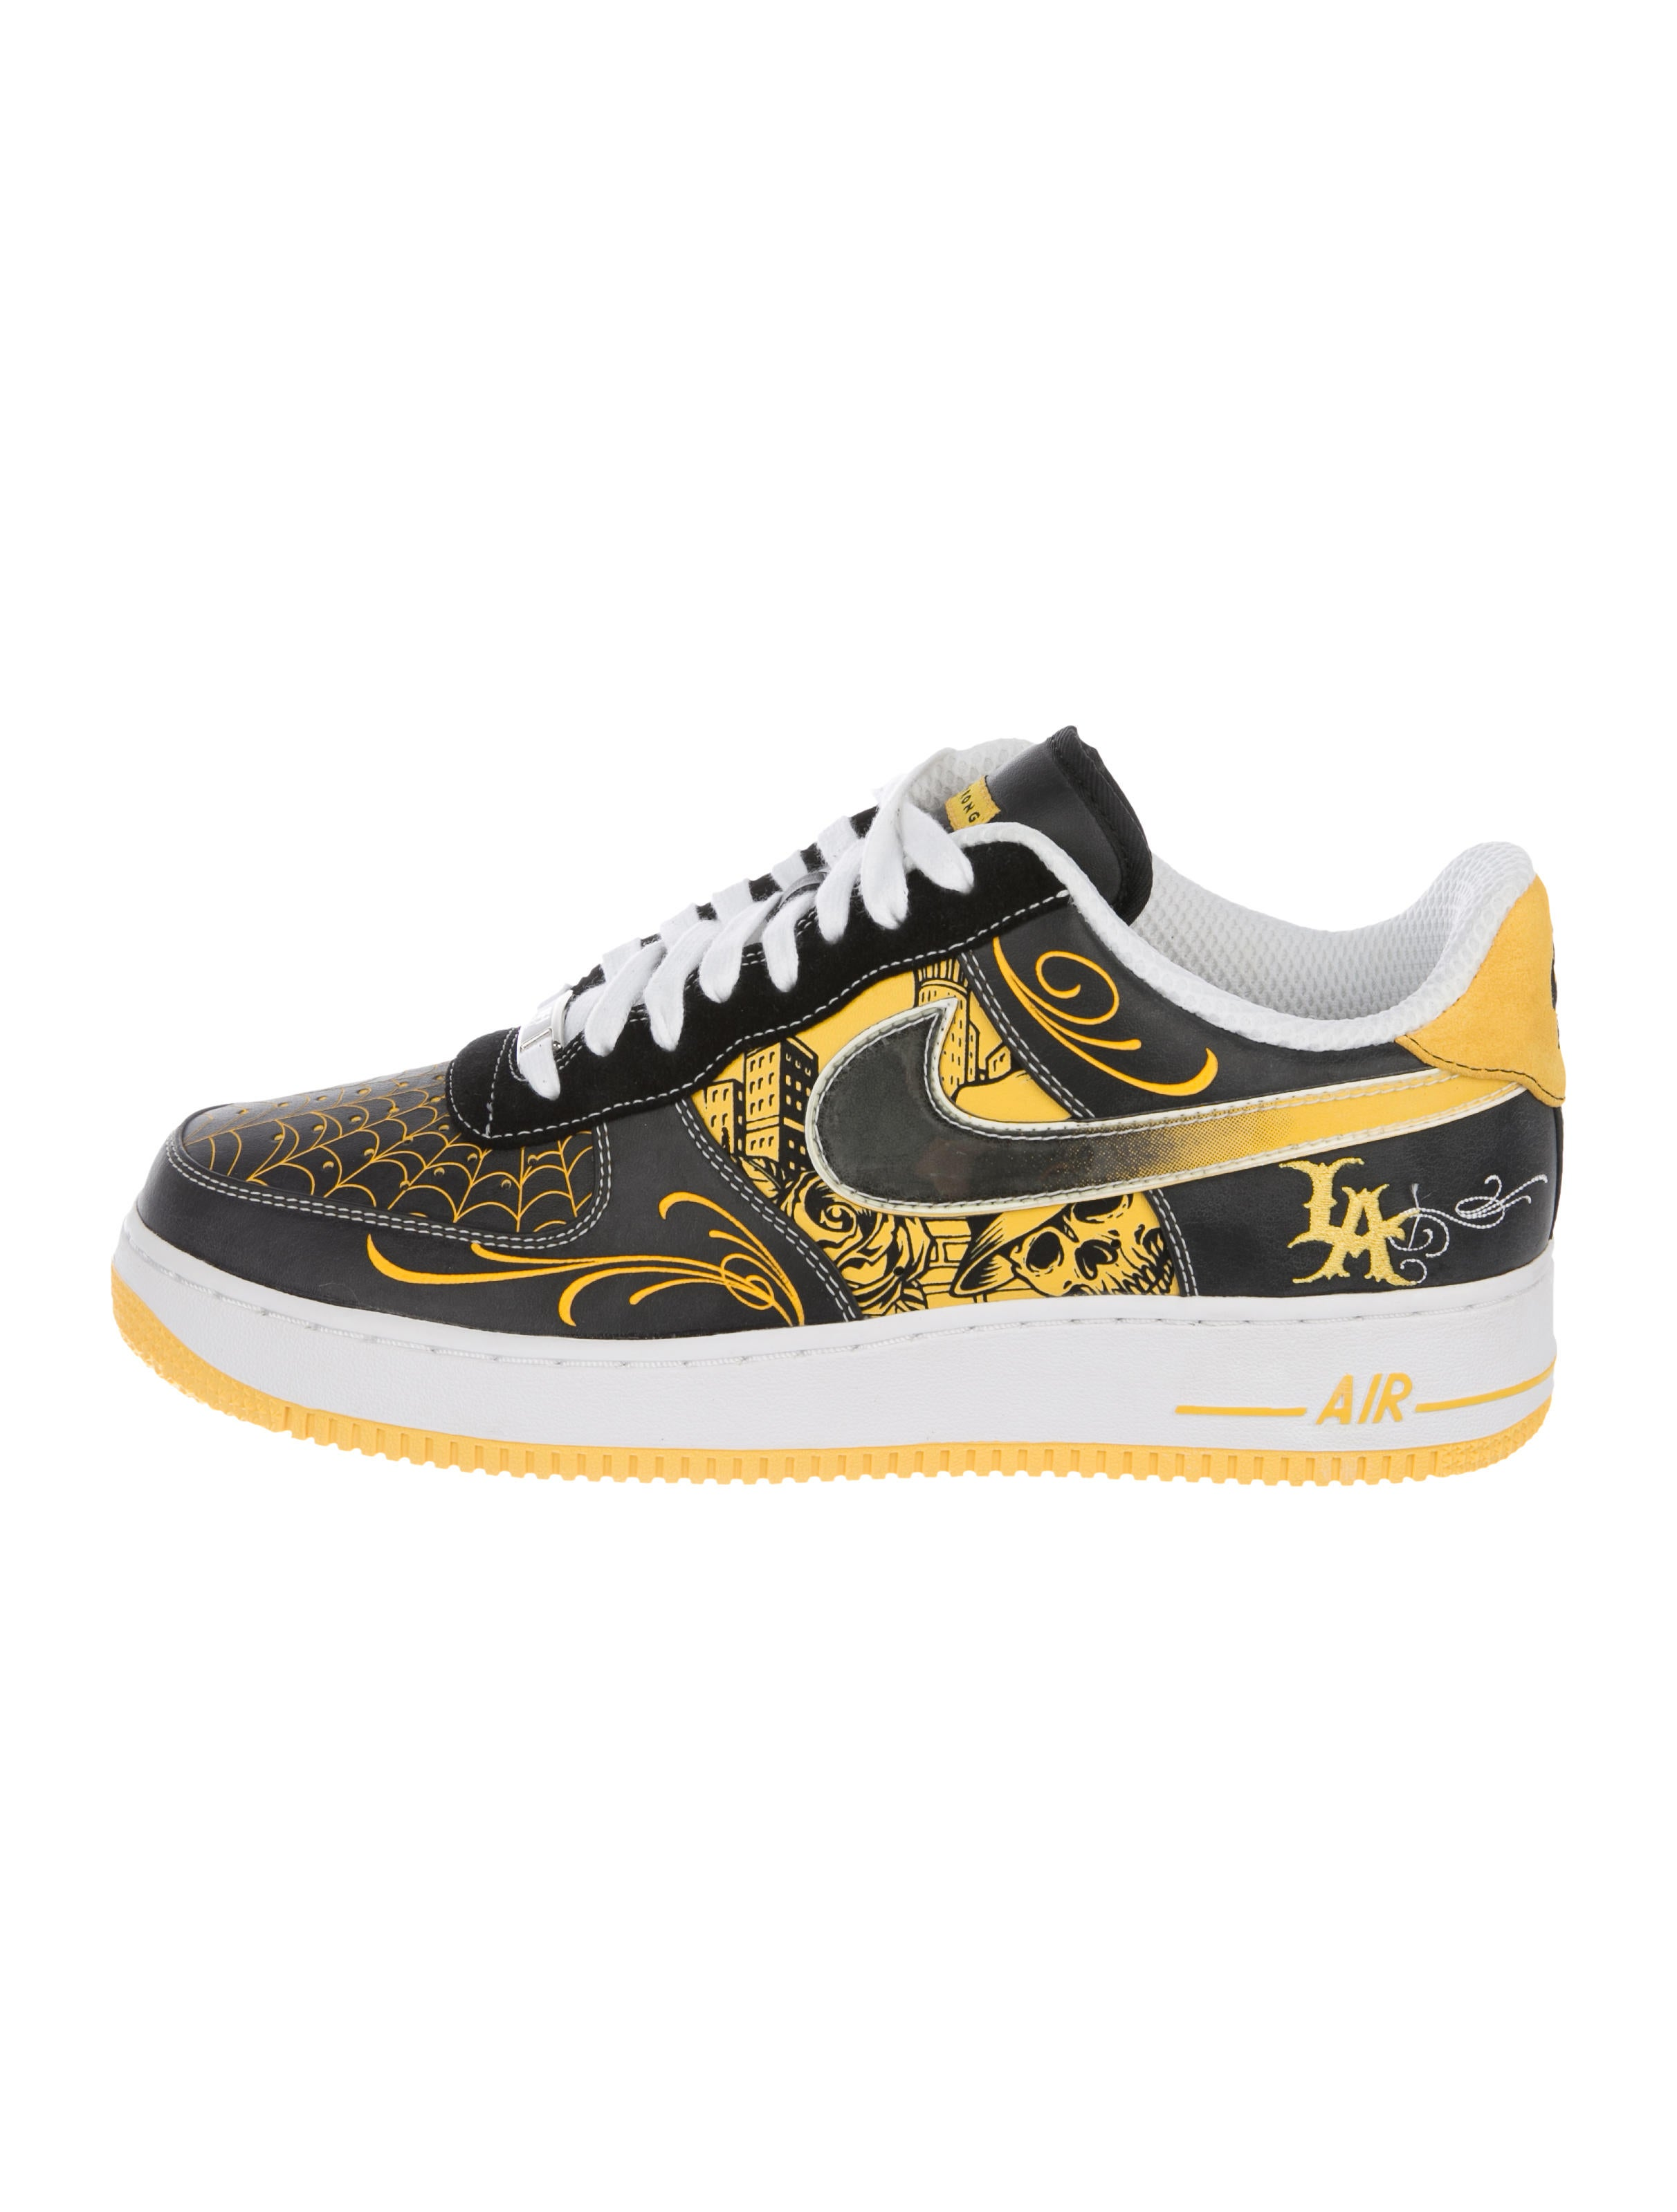 Livestrong x Air Force 1 Low Supreme TZ LAF 'Mr. Cartoon'